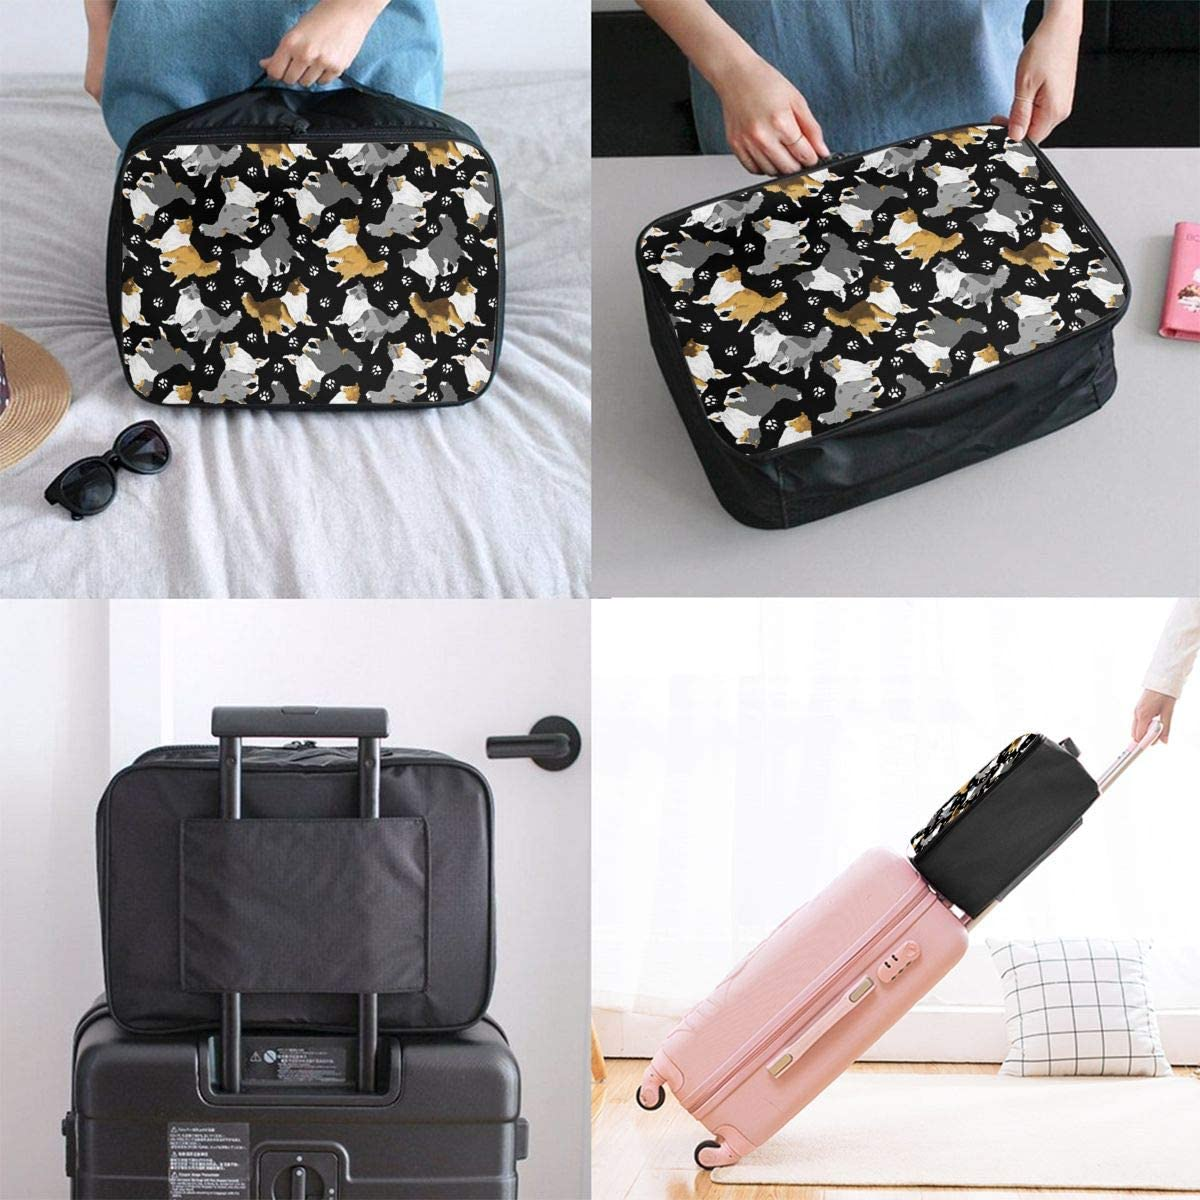 Cute Dog Paw Prints Black Background Travel Carry-on Luggage Weekender Bag Overnight Tote Flight Duffel In Trolley Handle